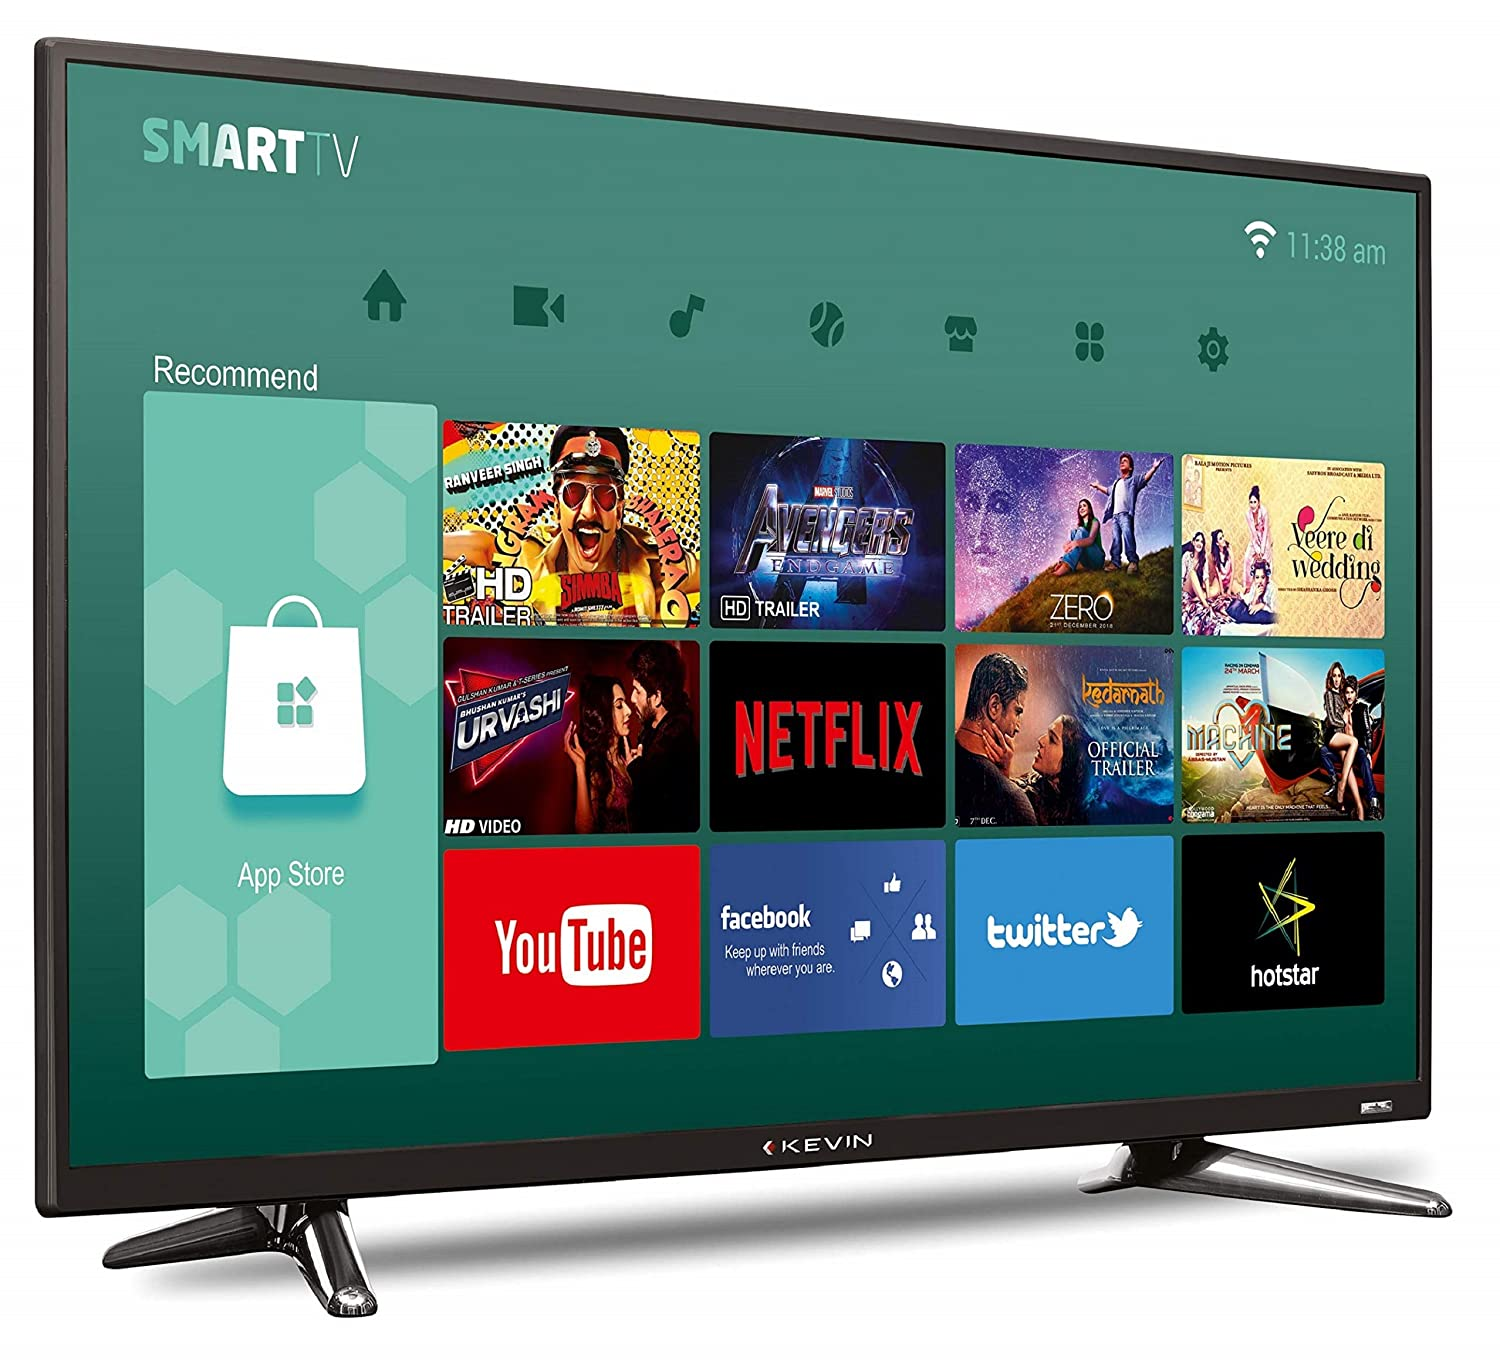 6 Best Smart TV in India 2019